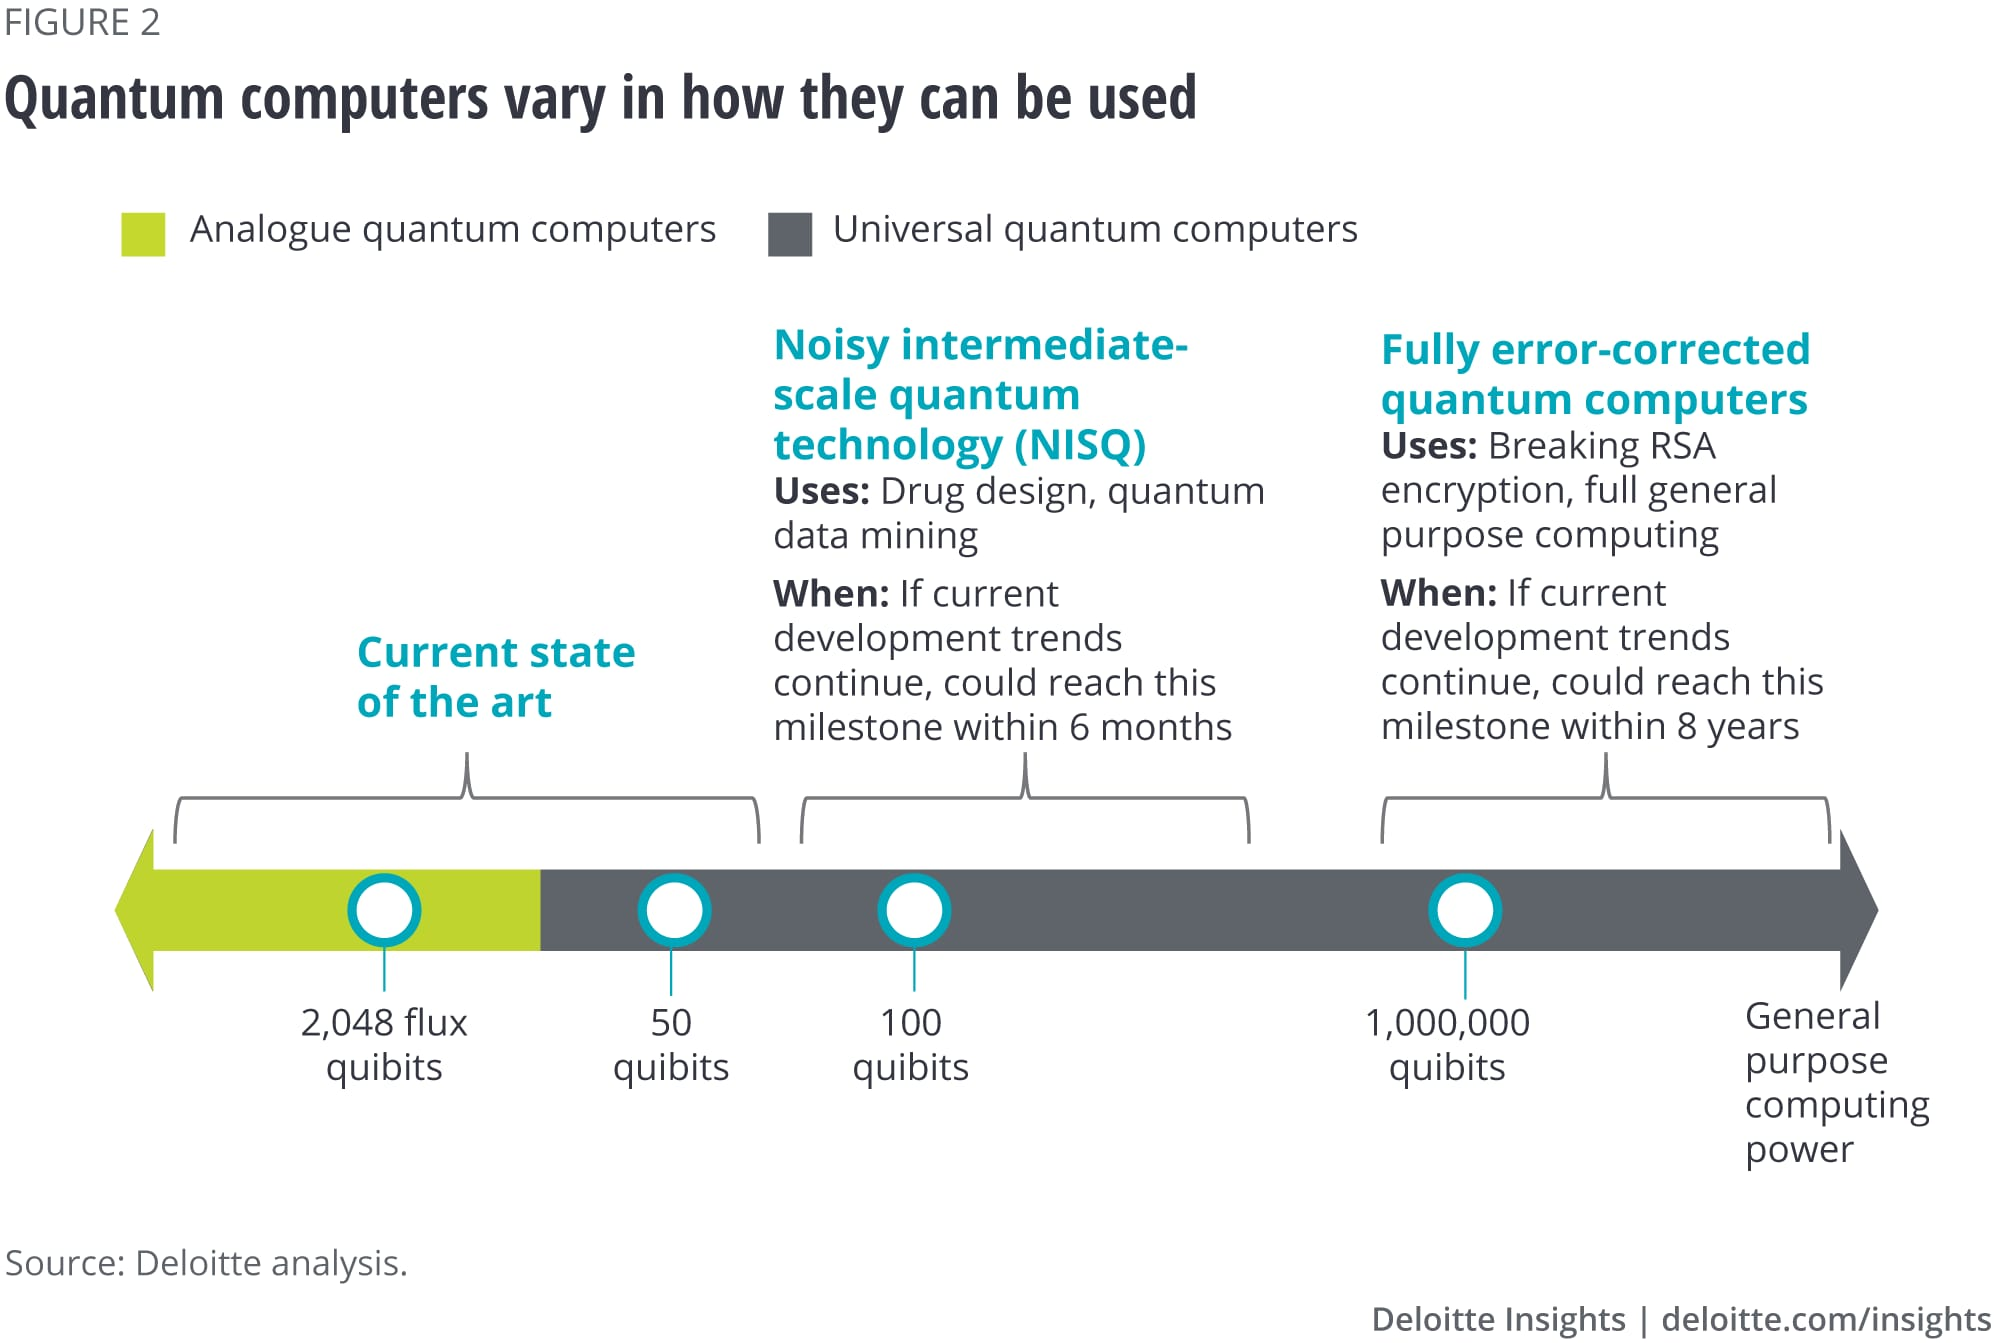 Quantum computers range in how they can be used